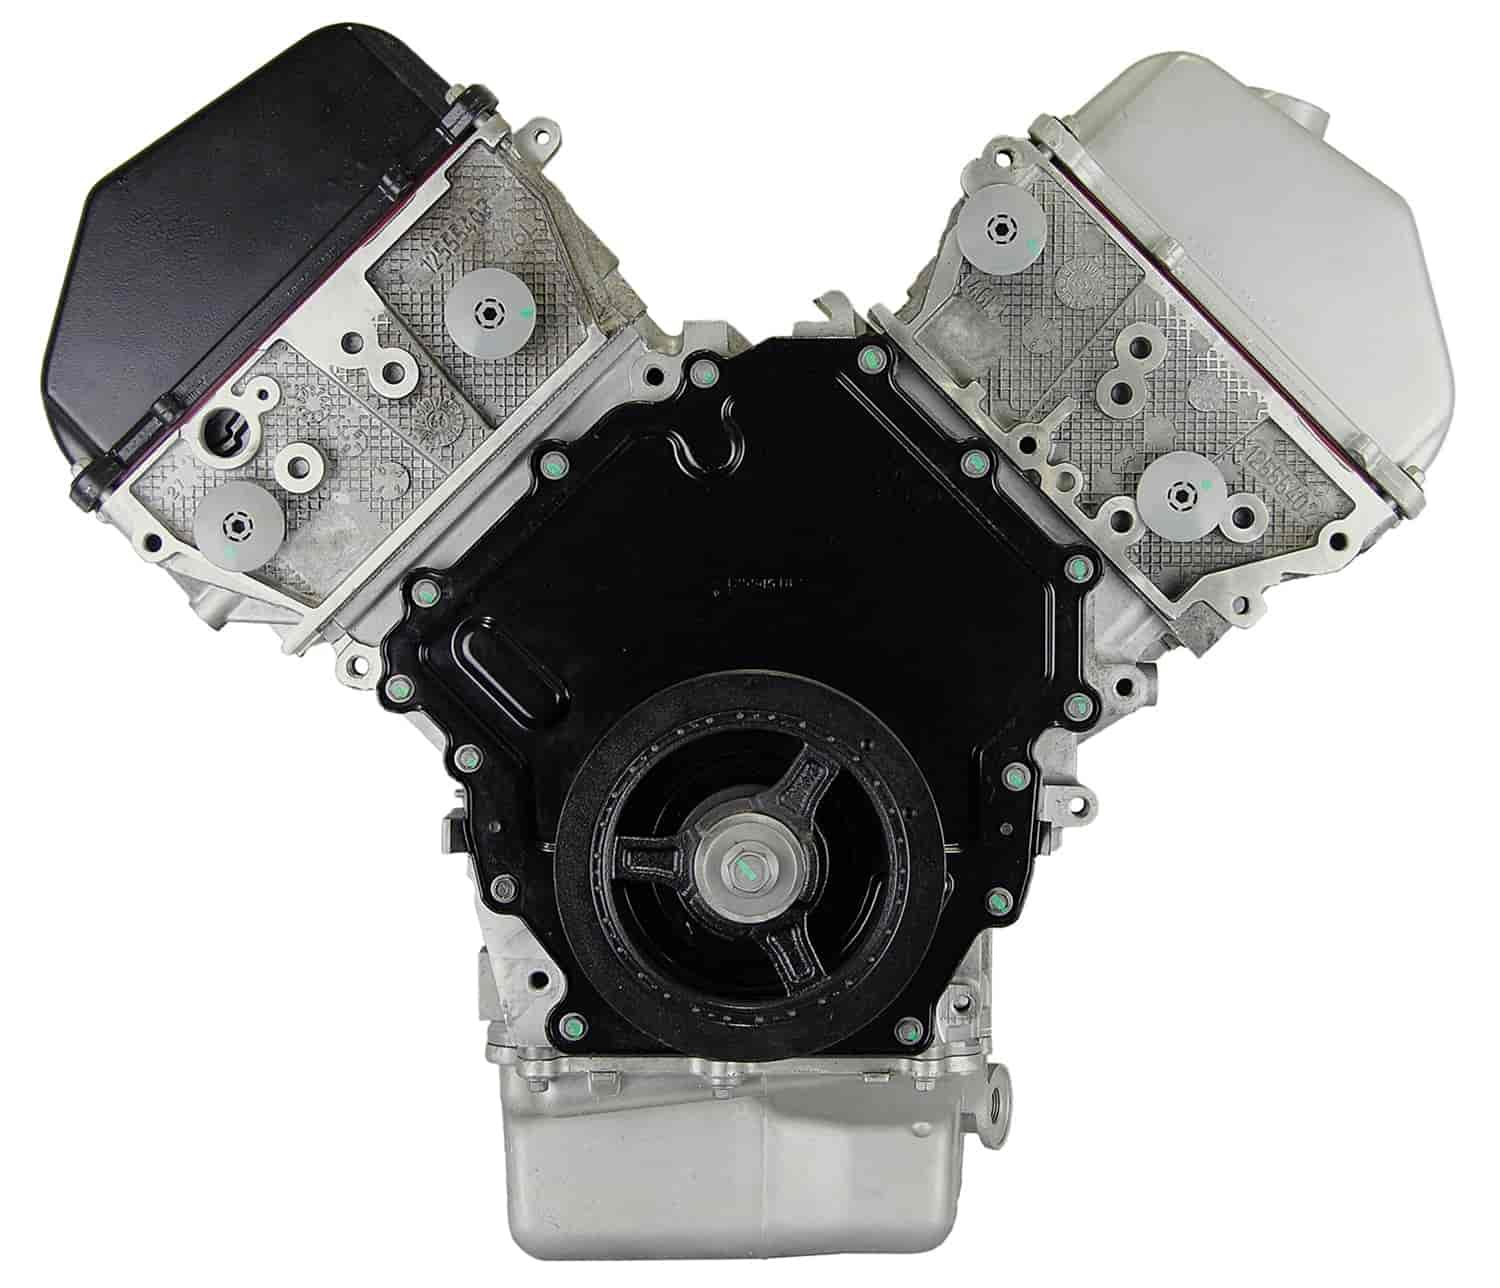 rating engine download v sale cadillac updates reviews and of image cts for car engines